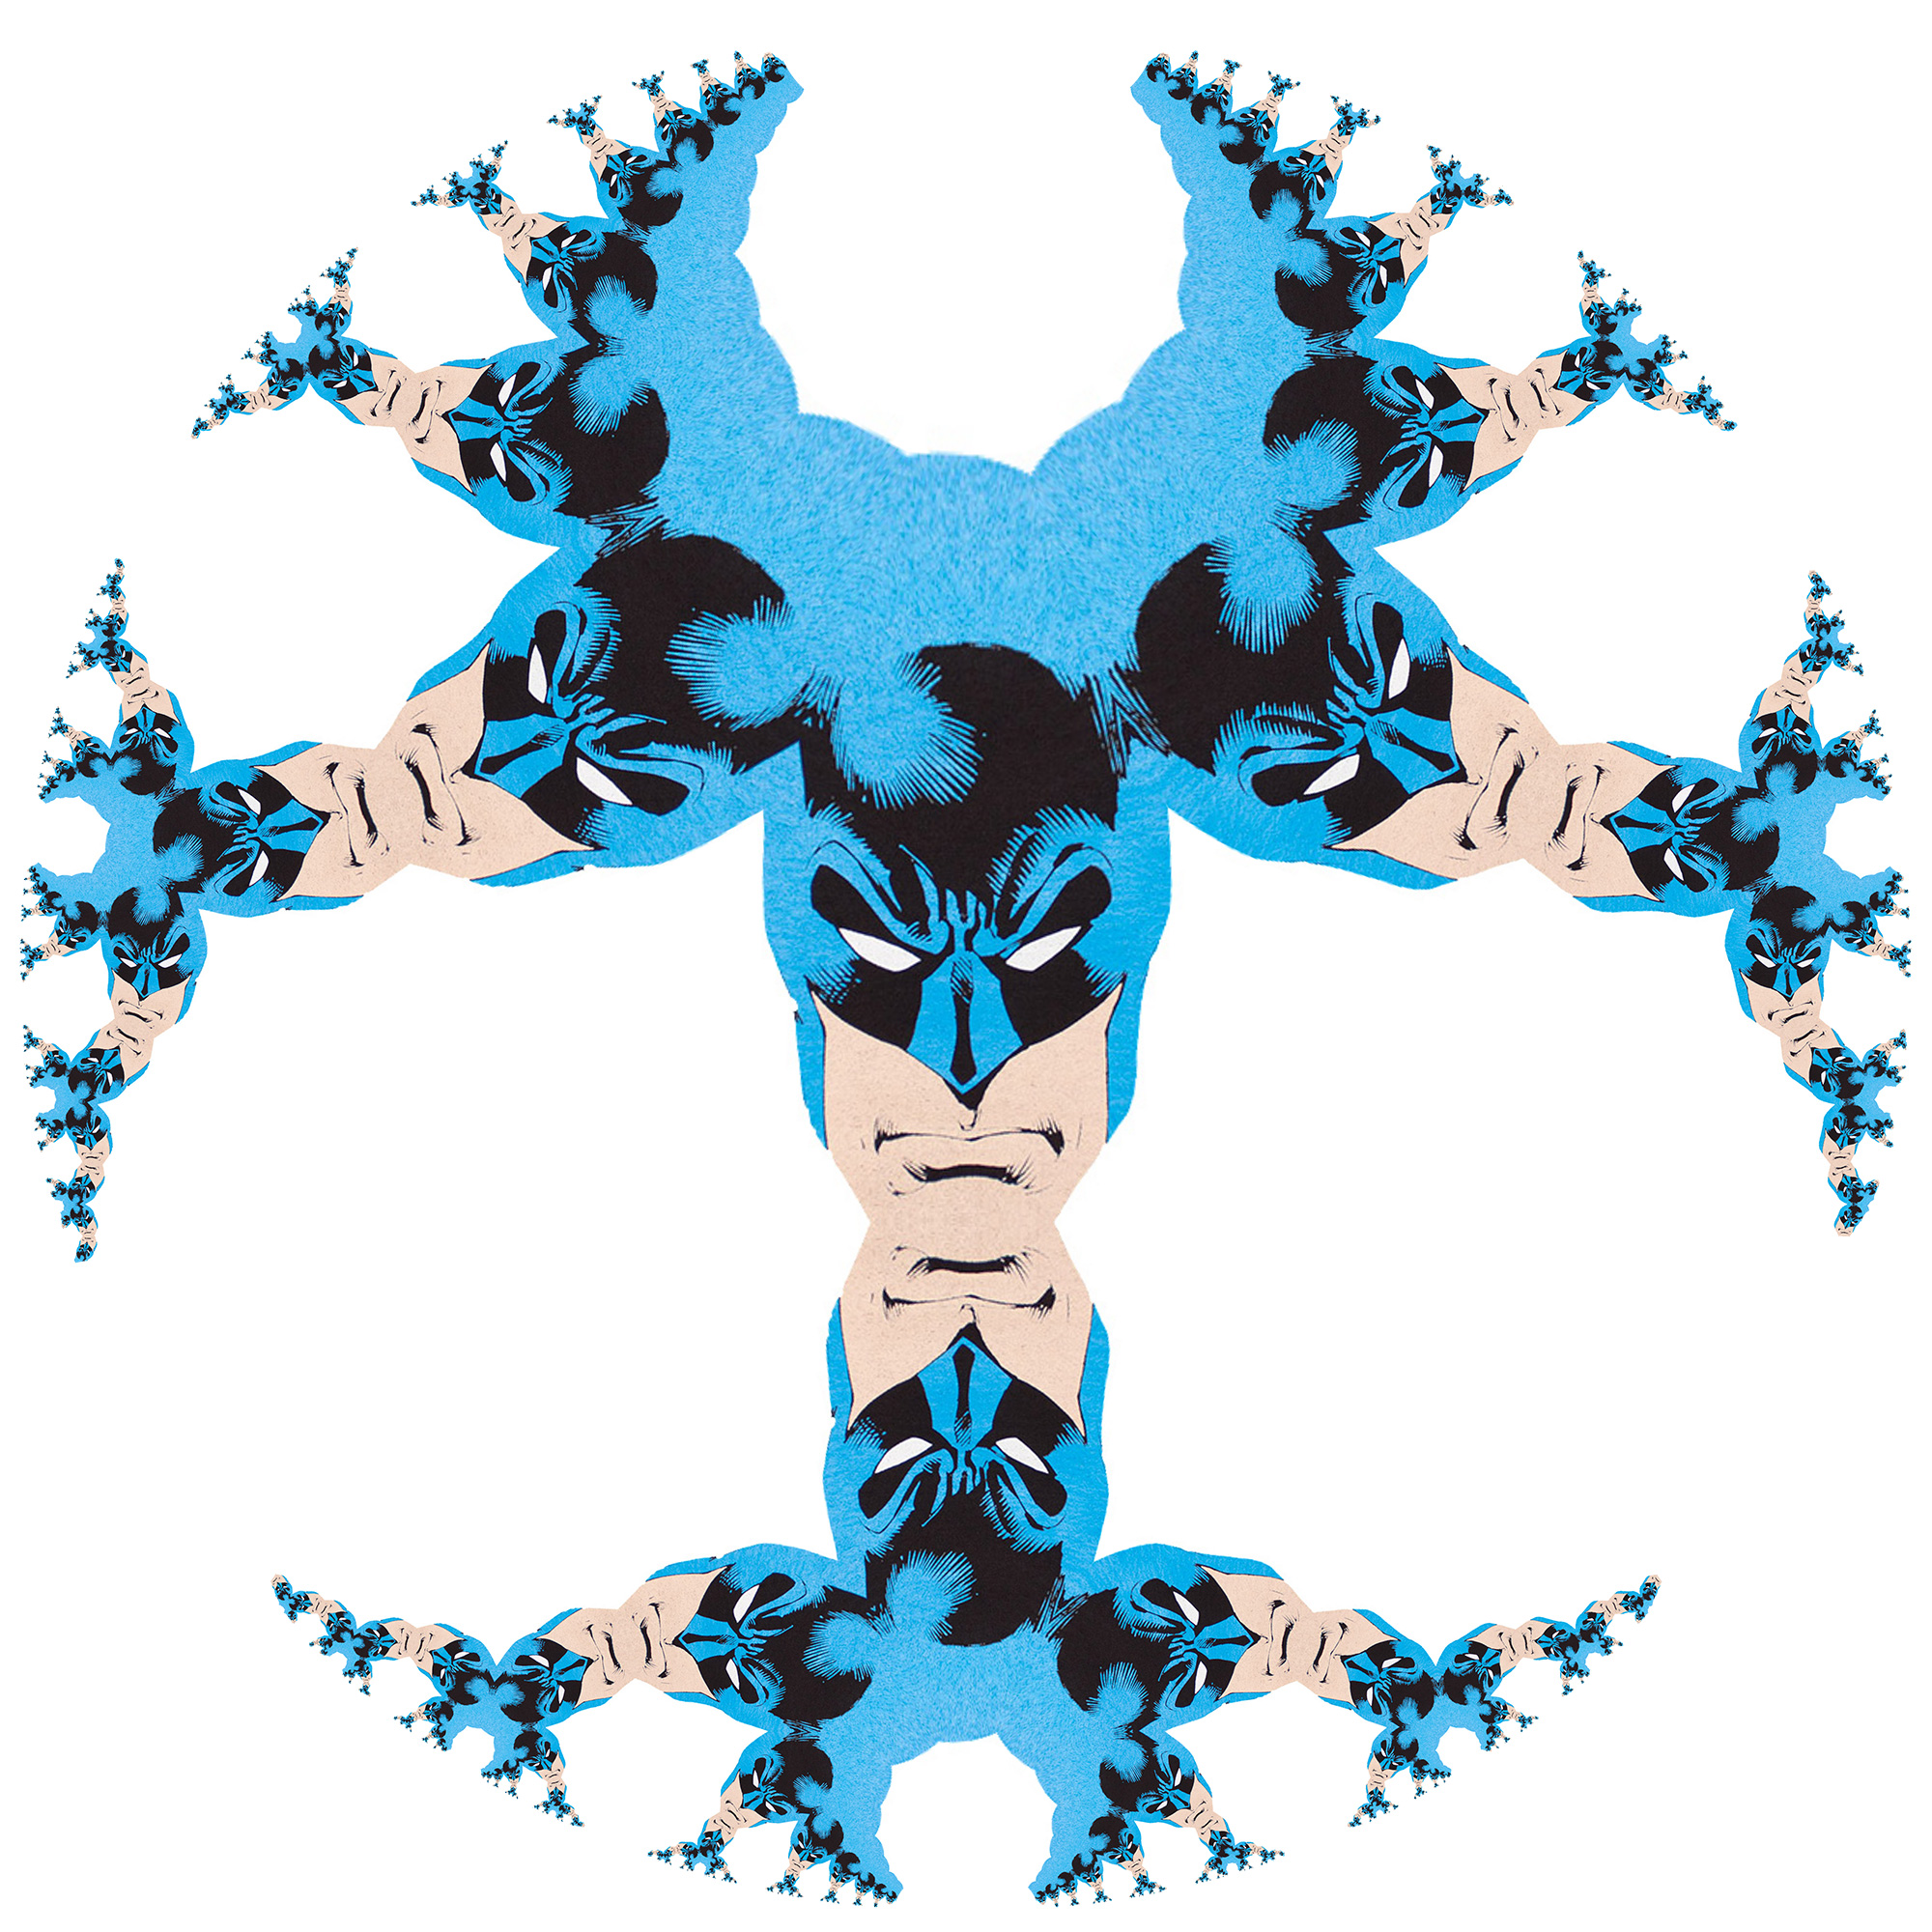 Pawn of the Demon: Batman and the Fractal Self-similarity of